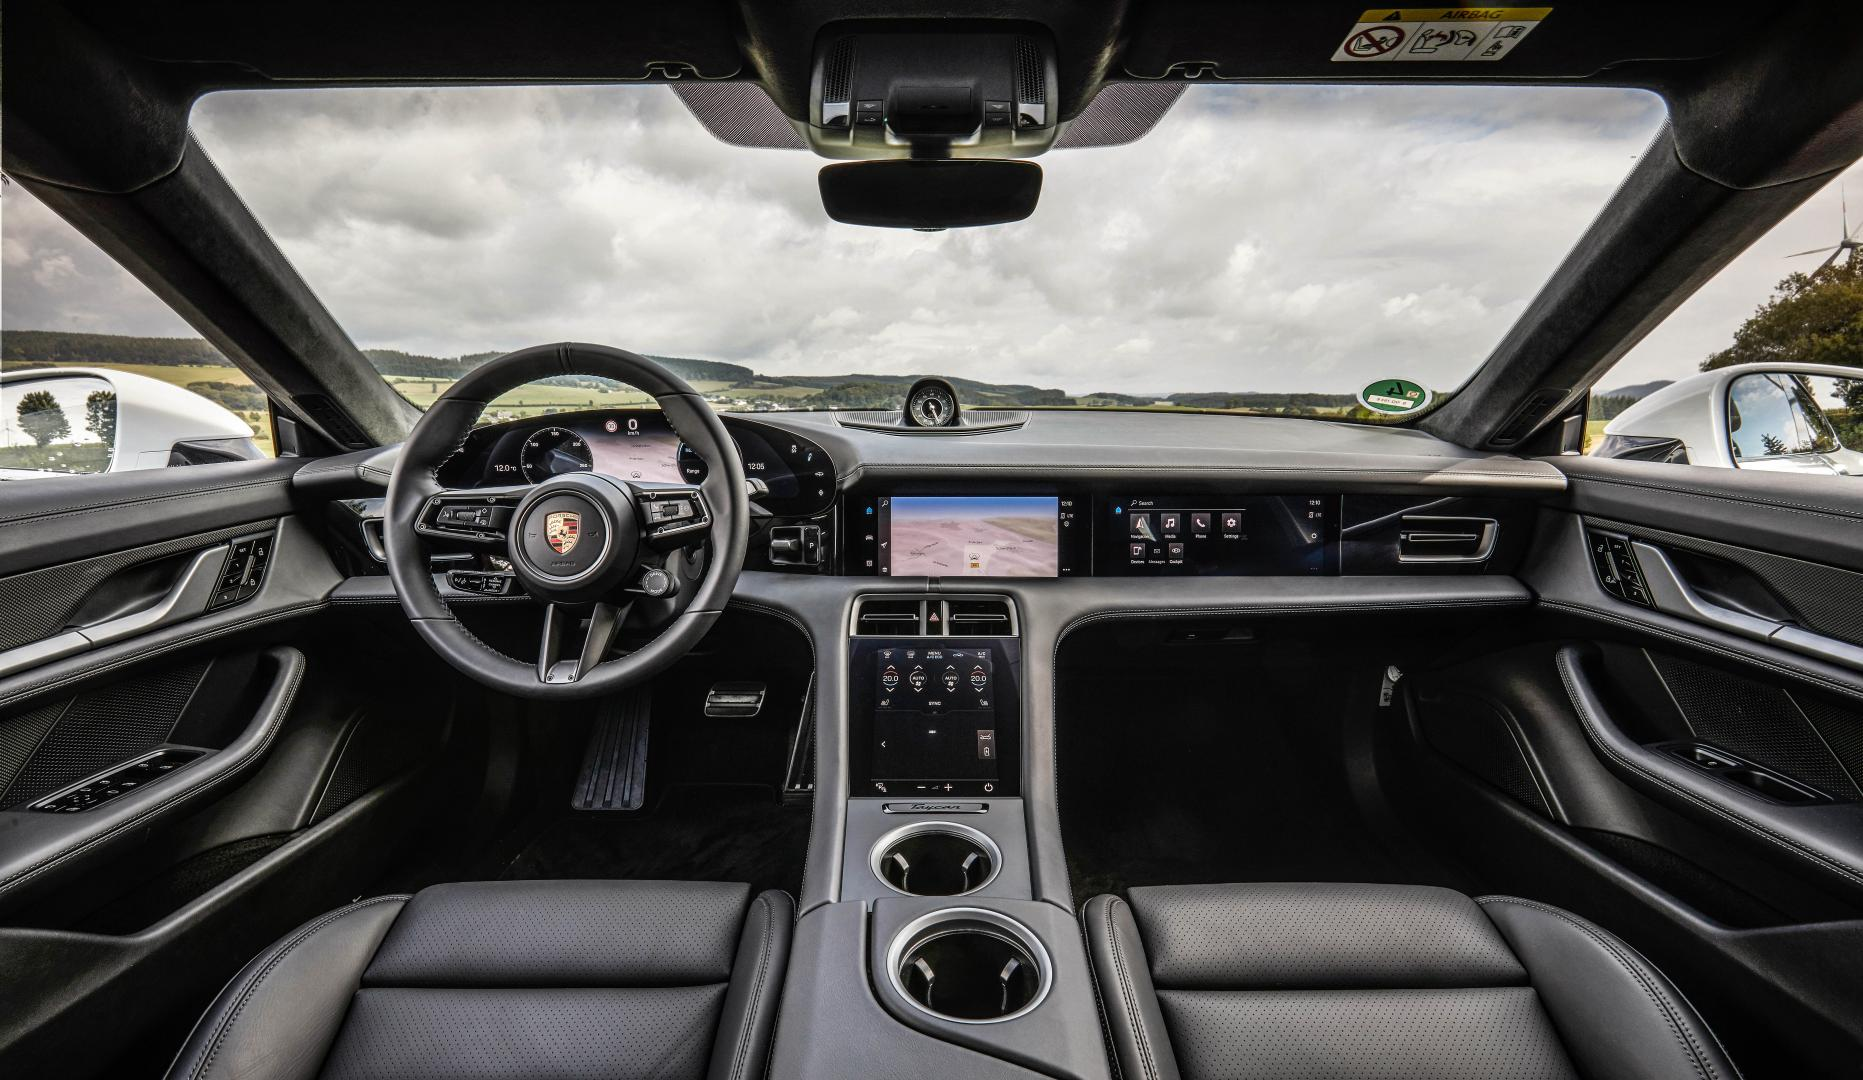 Porsche Taycan Turbo S interieur dashboard